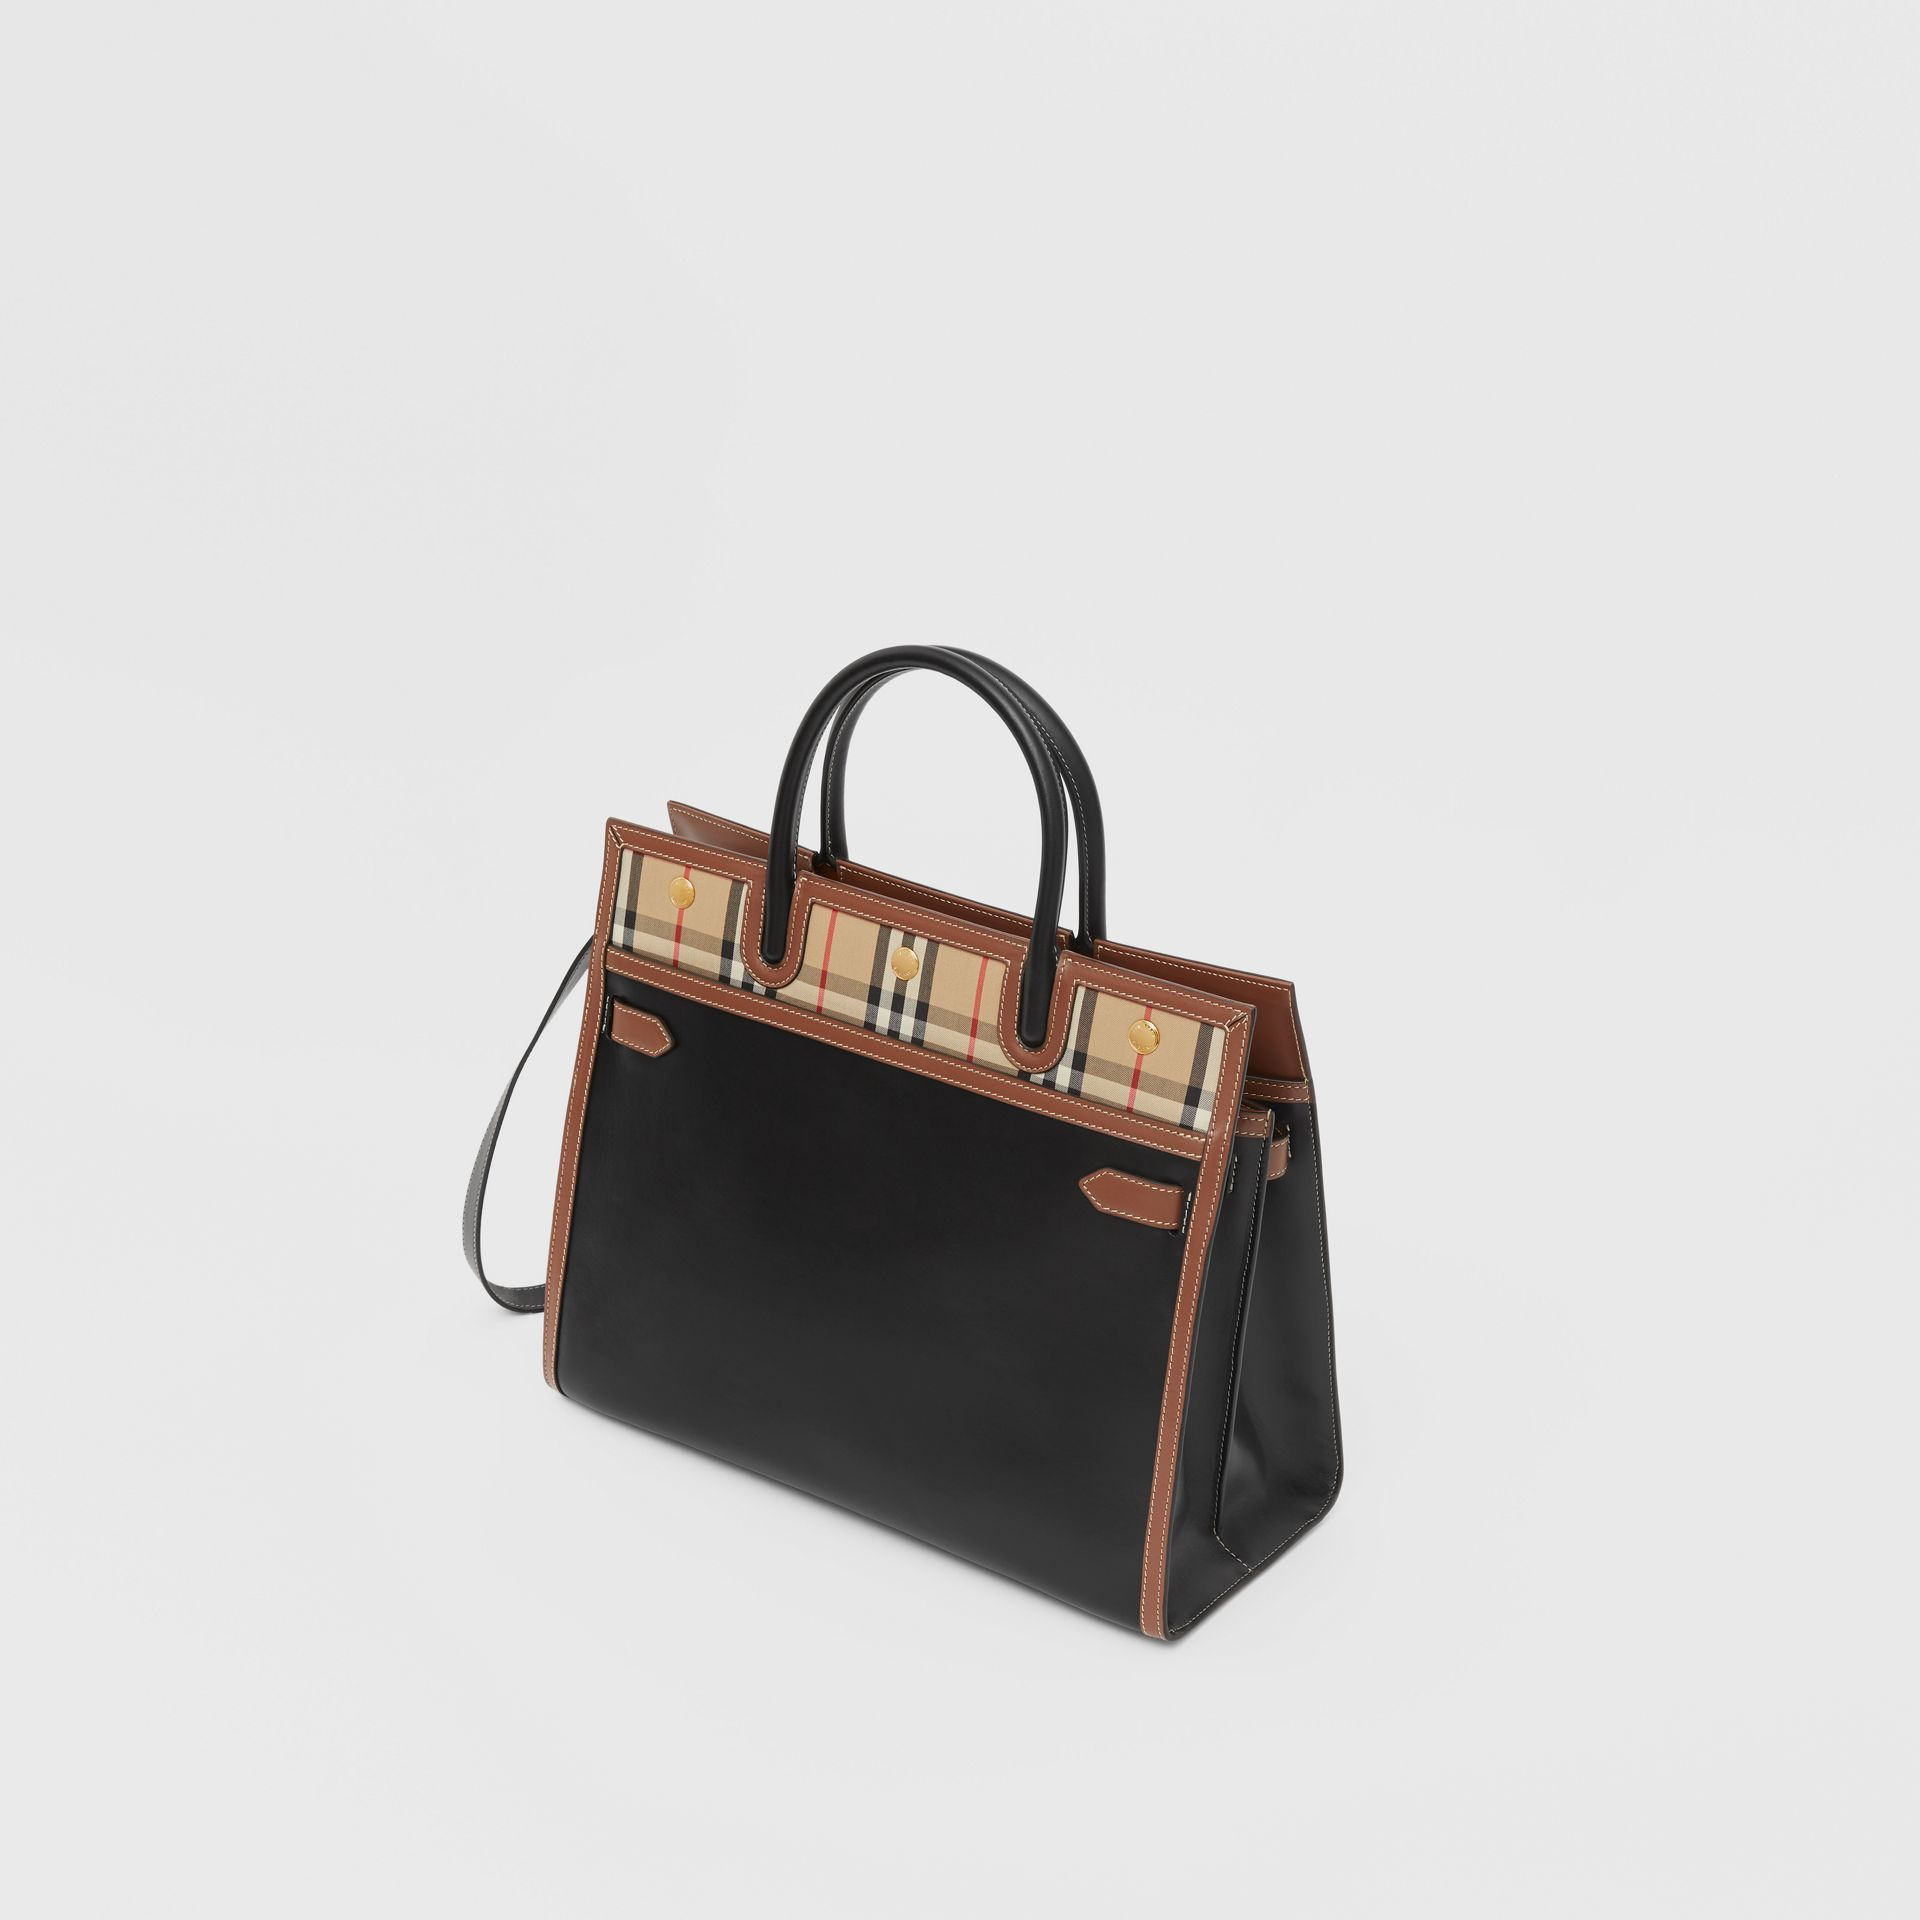 Mini Leather and Vintage Check Two-handle Title Bag in Black - Women | Burberry - gallery image 3